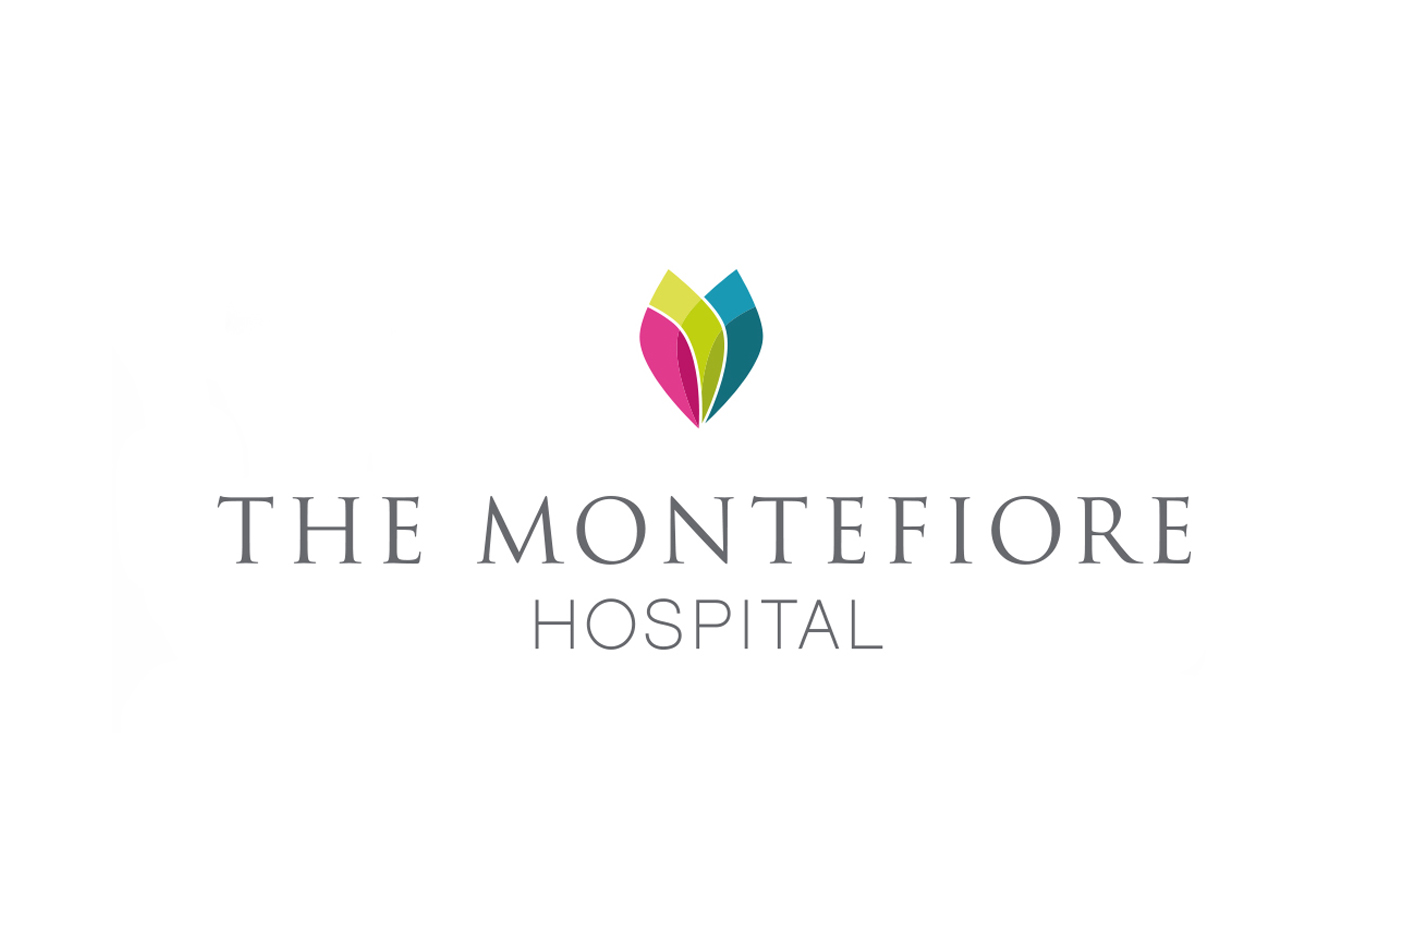 The Montefiore Hospital  Main branding for the Spire Healthcare group of private hospitals.